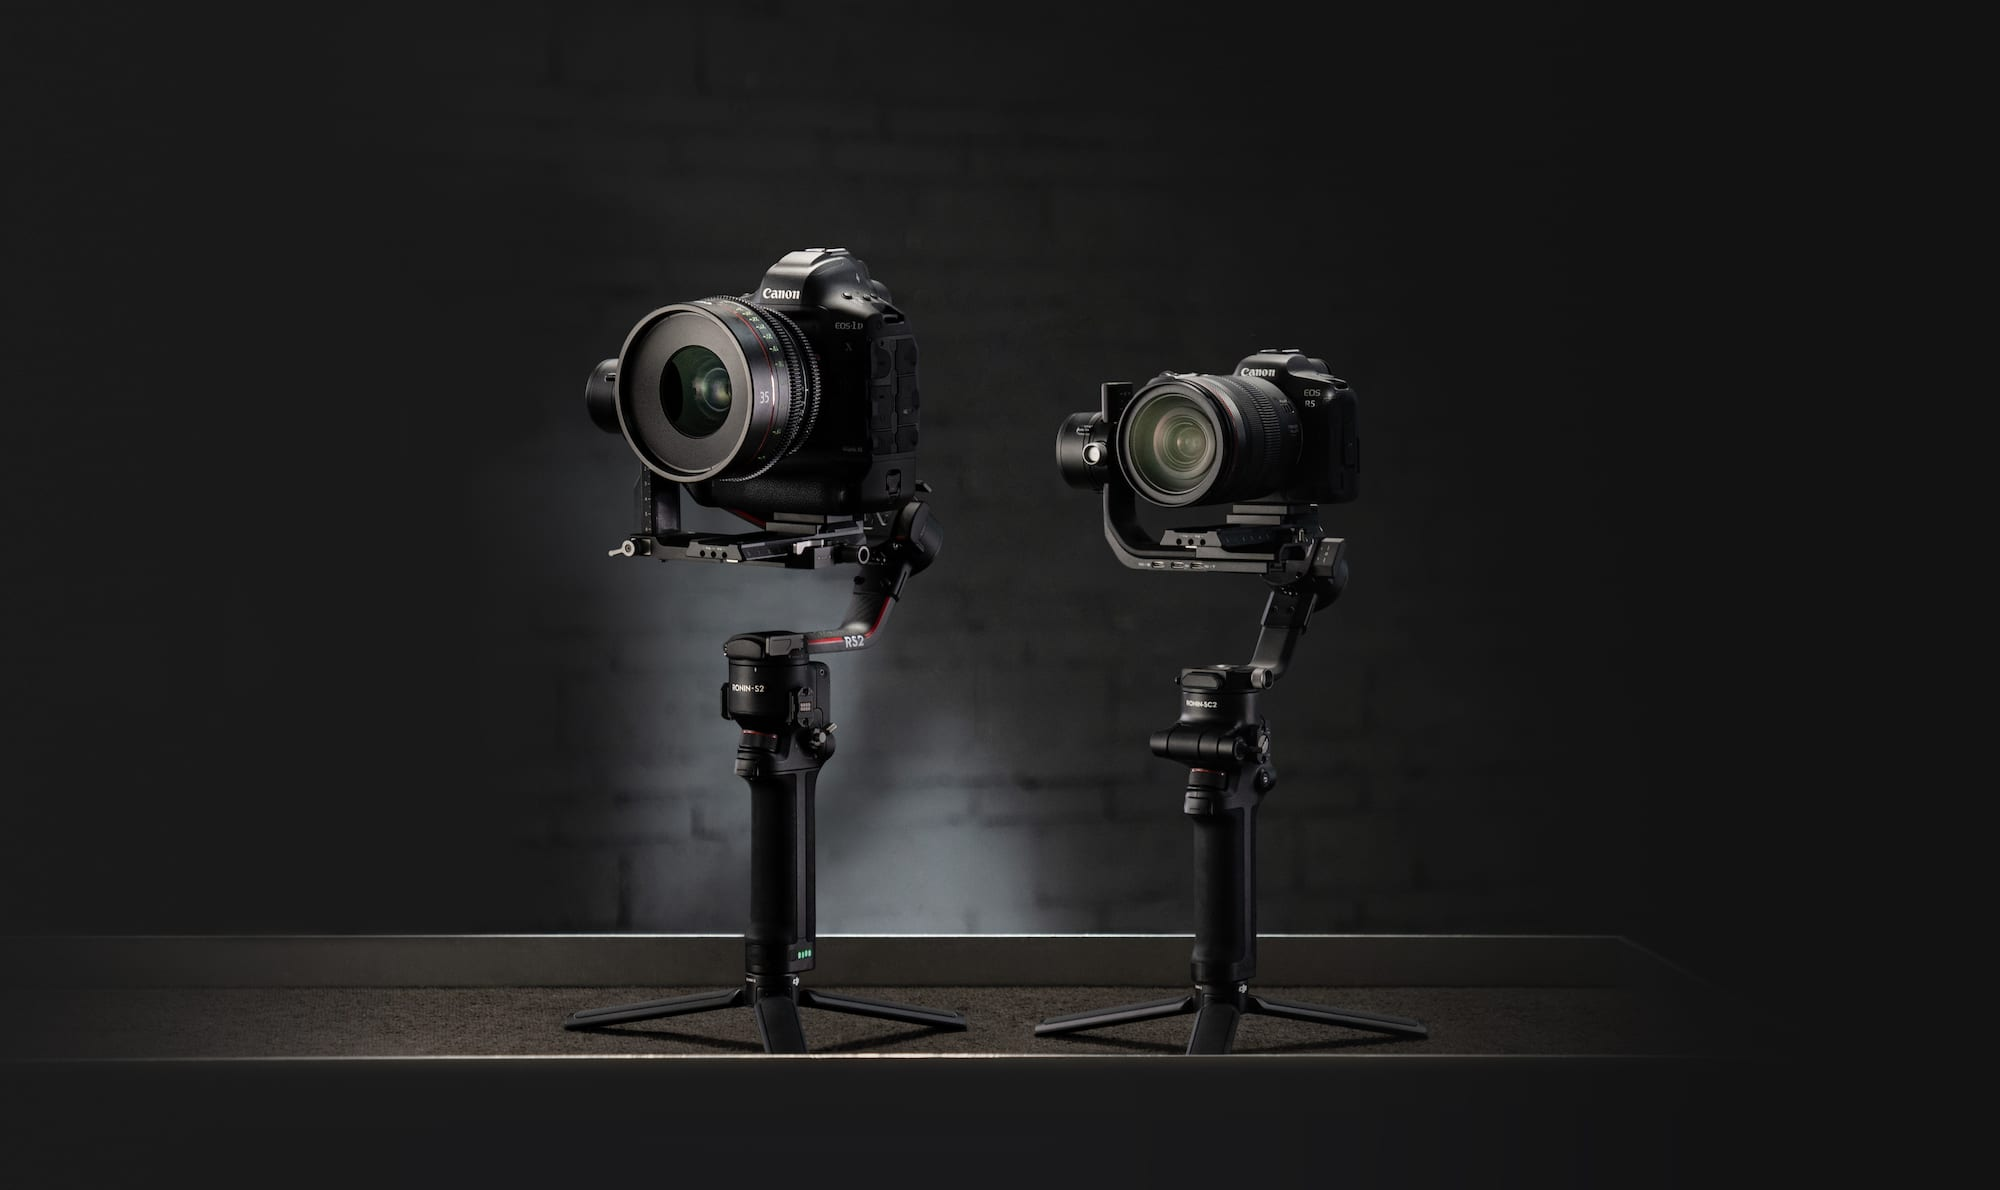 DJI introduces new Ronin Series with RS 2 and RSC 2 gimbals